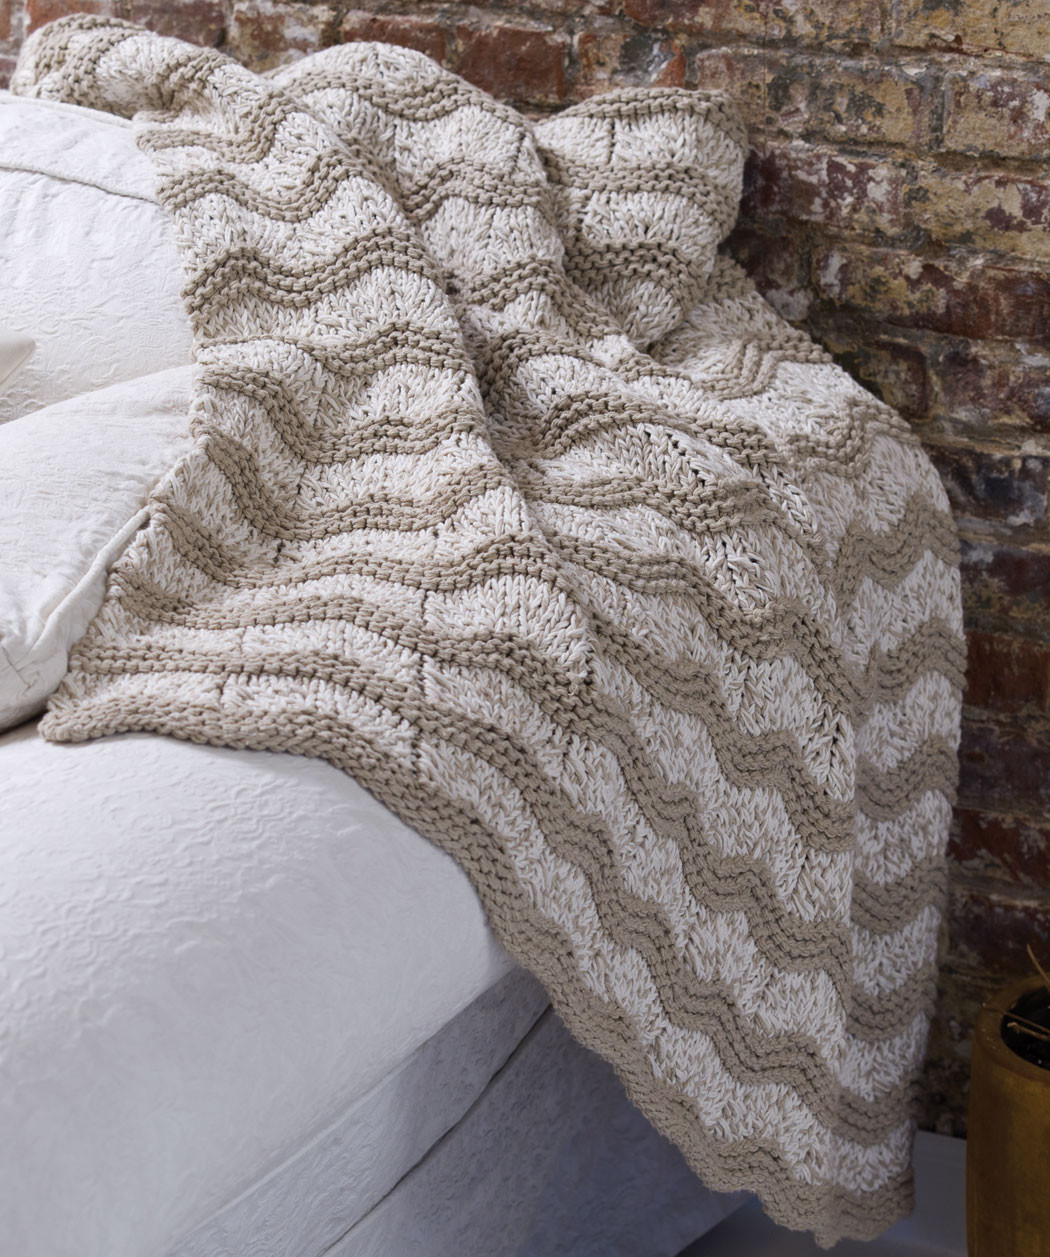 Knitted Blanket Patterns Inspirational Knitted Afghan Patterns Of Adorable 45 Photos Knitted Blanket Patterns